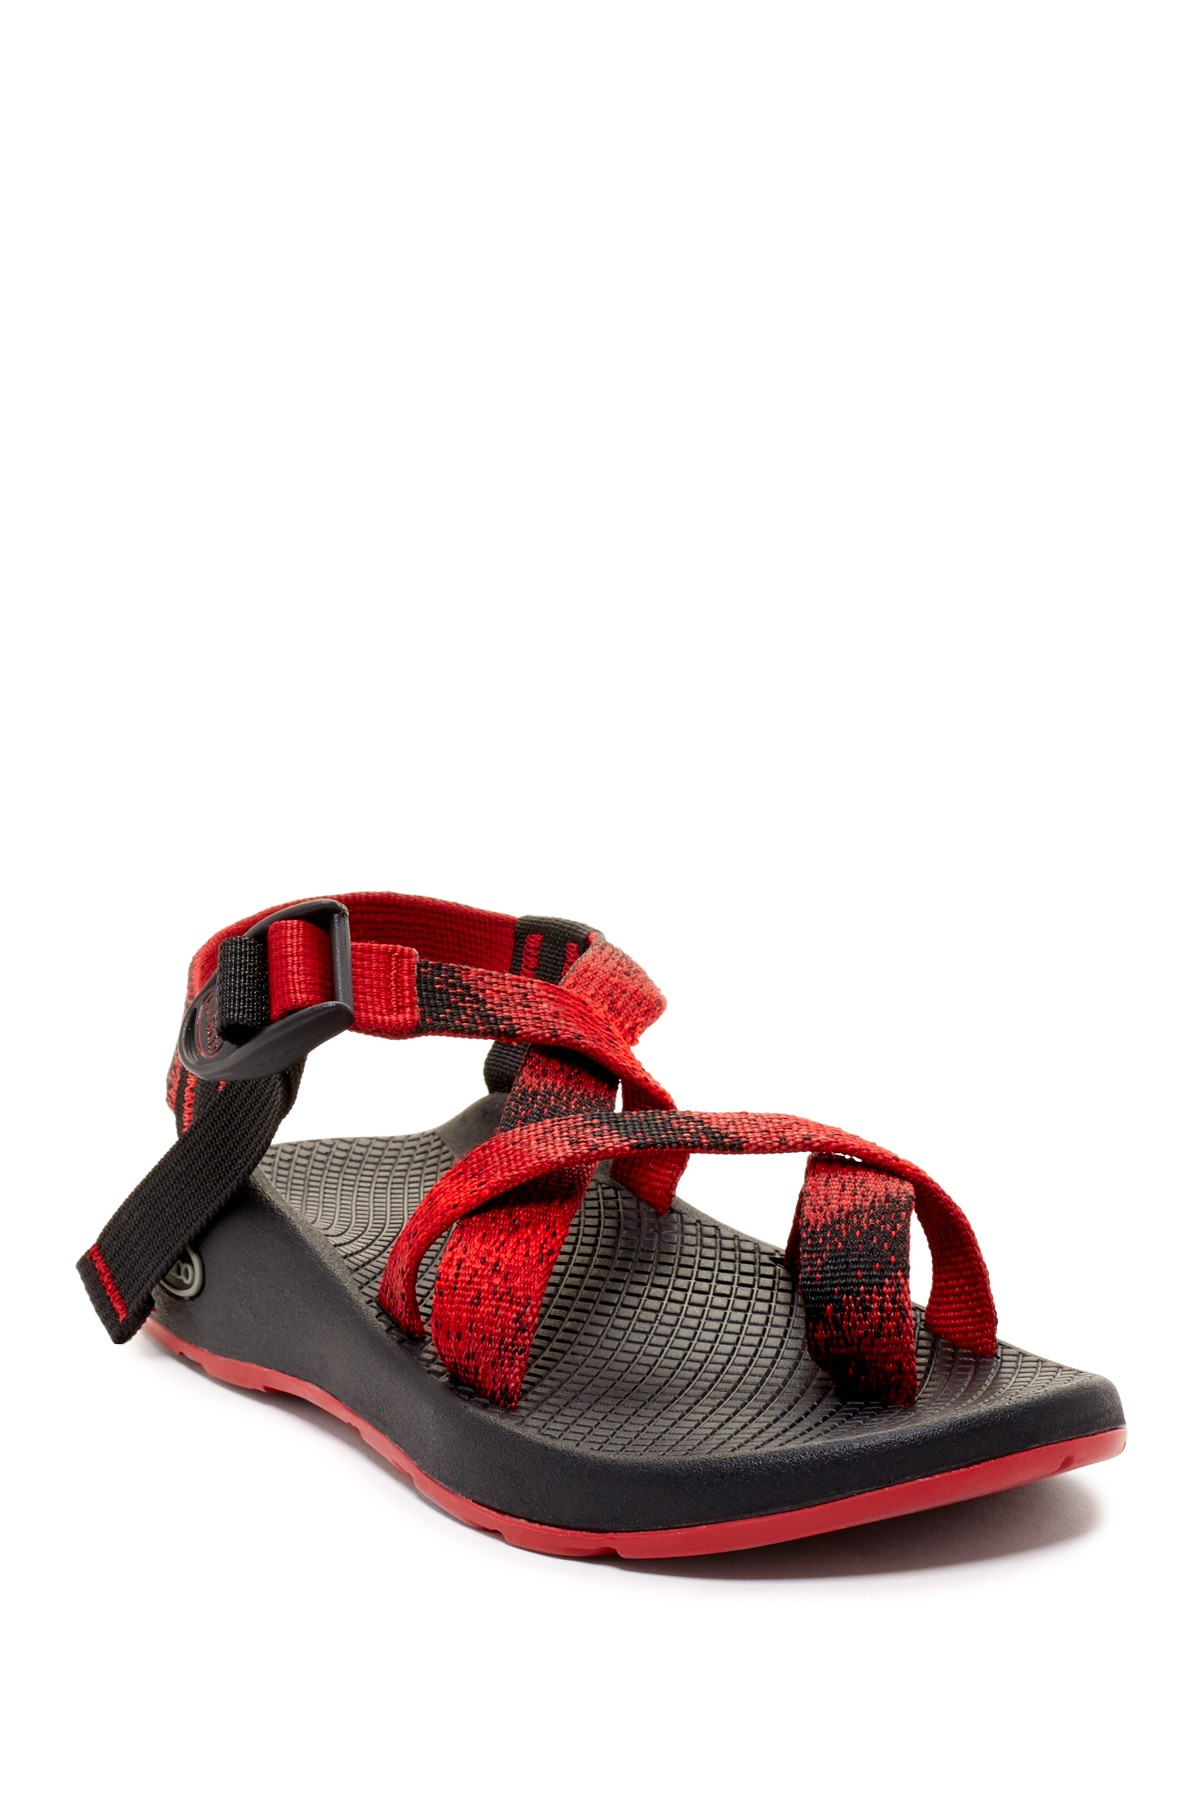 Elegant Chaco Z1 Unaweep Sandals For Women In Floral Red